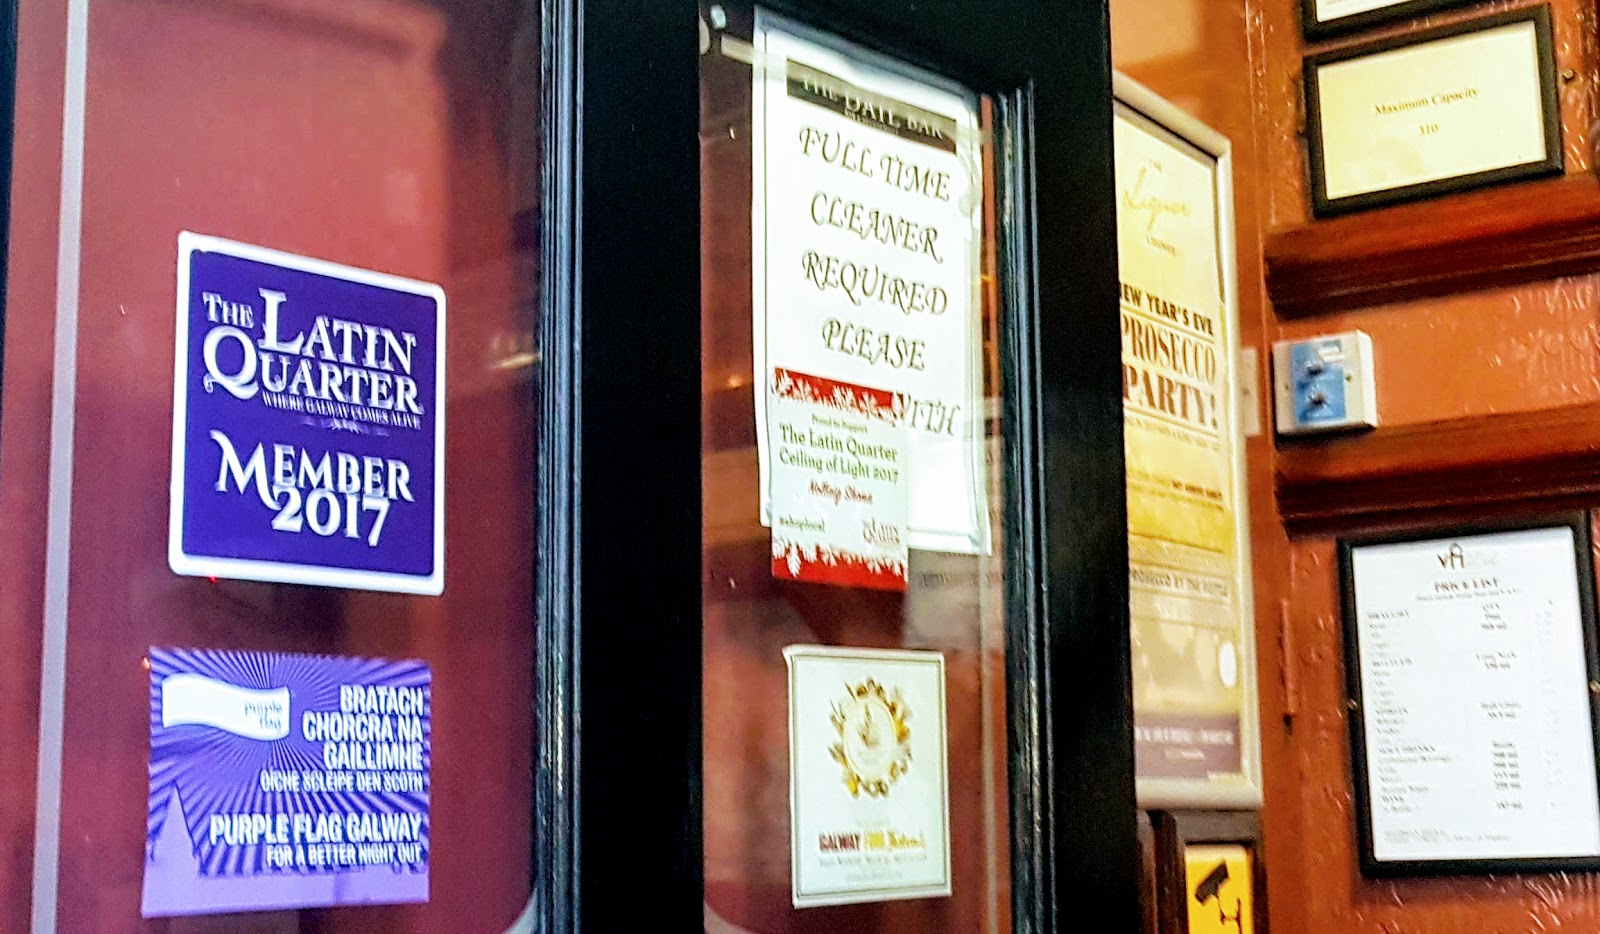 Job advert, alongside a sign for a new years eve prosecco party in the dial bar .  Also Latin Quarter 2017 member and purple flag safe city sticker